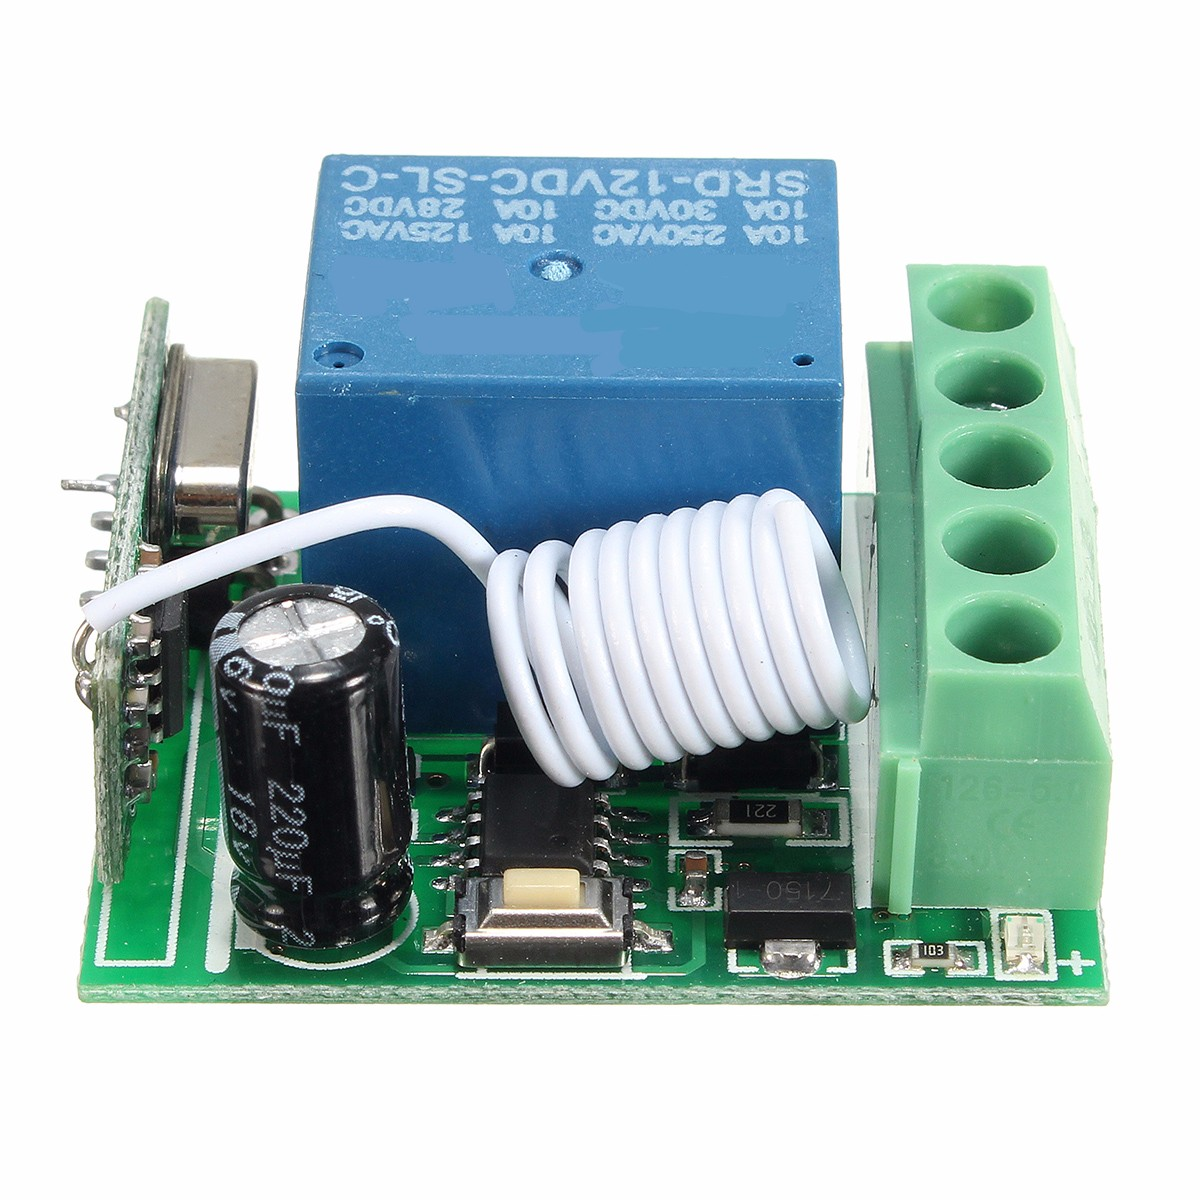 LEORY 433MHz <font><b>RF</b></font> Remote Control Receiver Wireless Relay Switch Module Receiver DC12V 10A <font><b>1CH</b></font> image